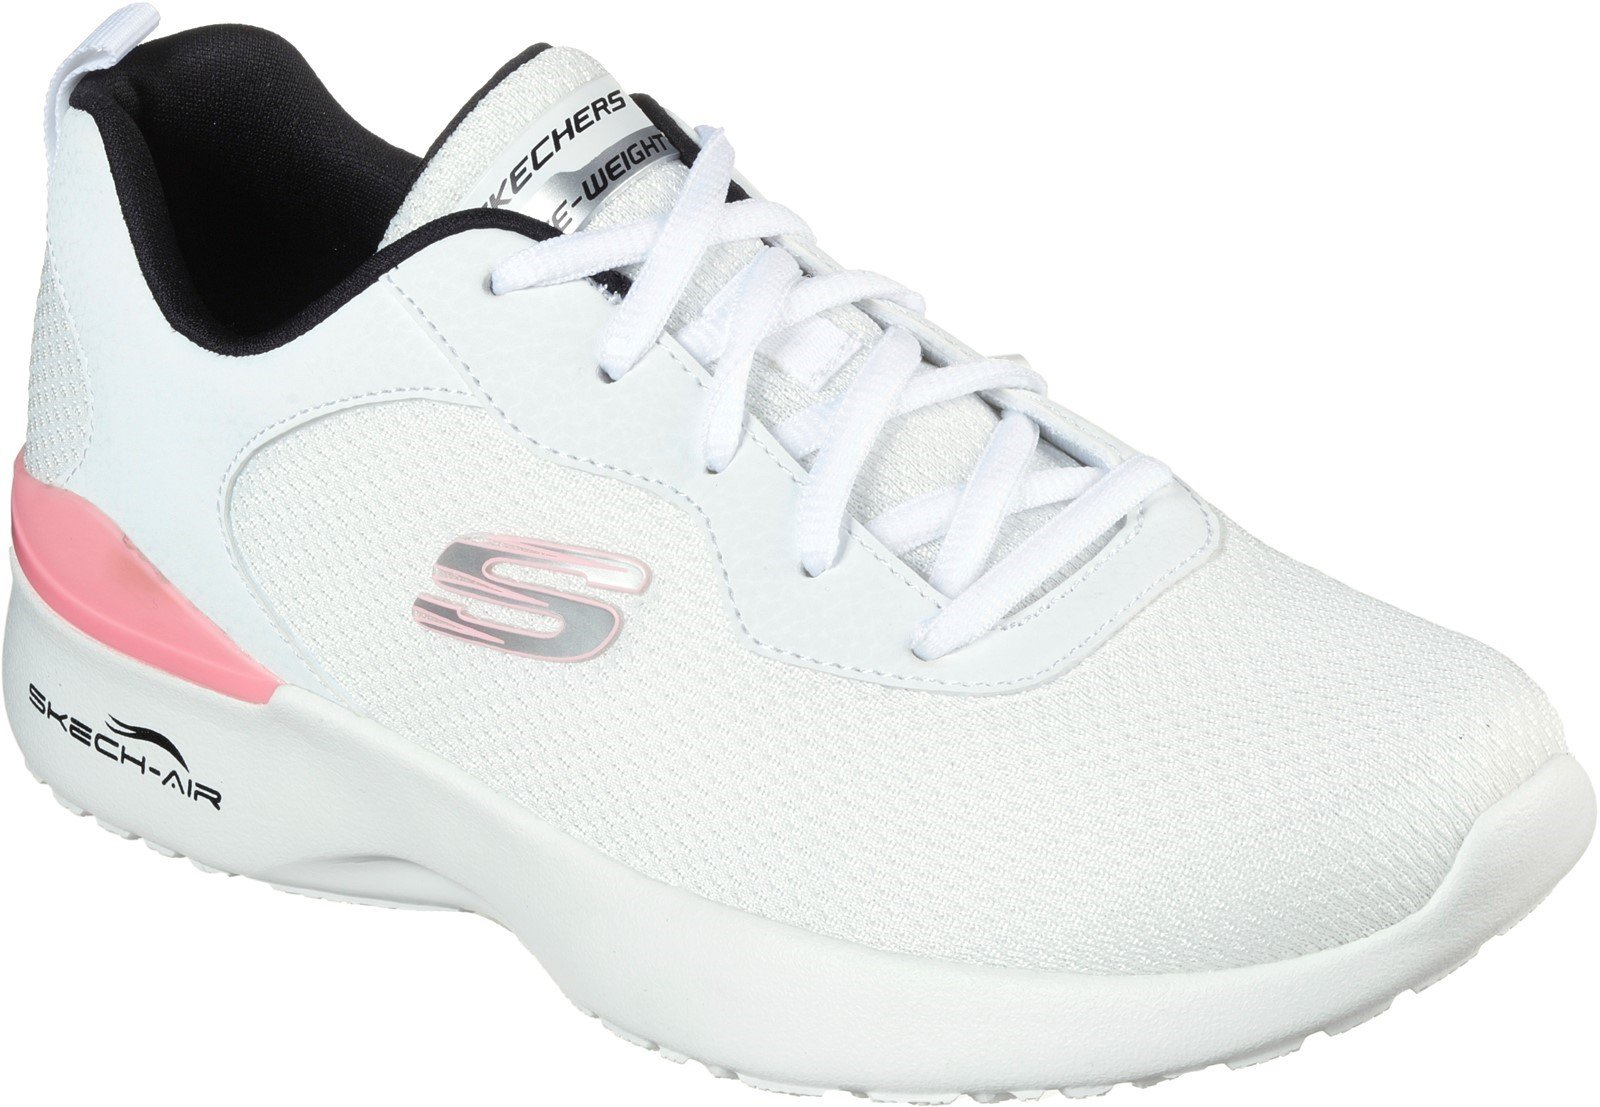 Skechers Women's Skech-Air Dynamight Sport Trainer Various Colours 32117 - White/Black/Pink 3